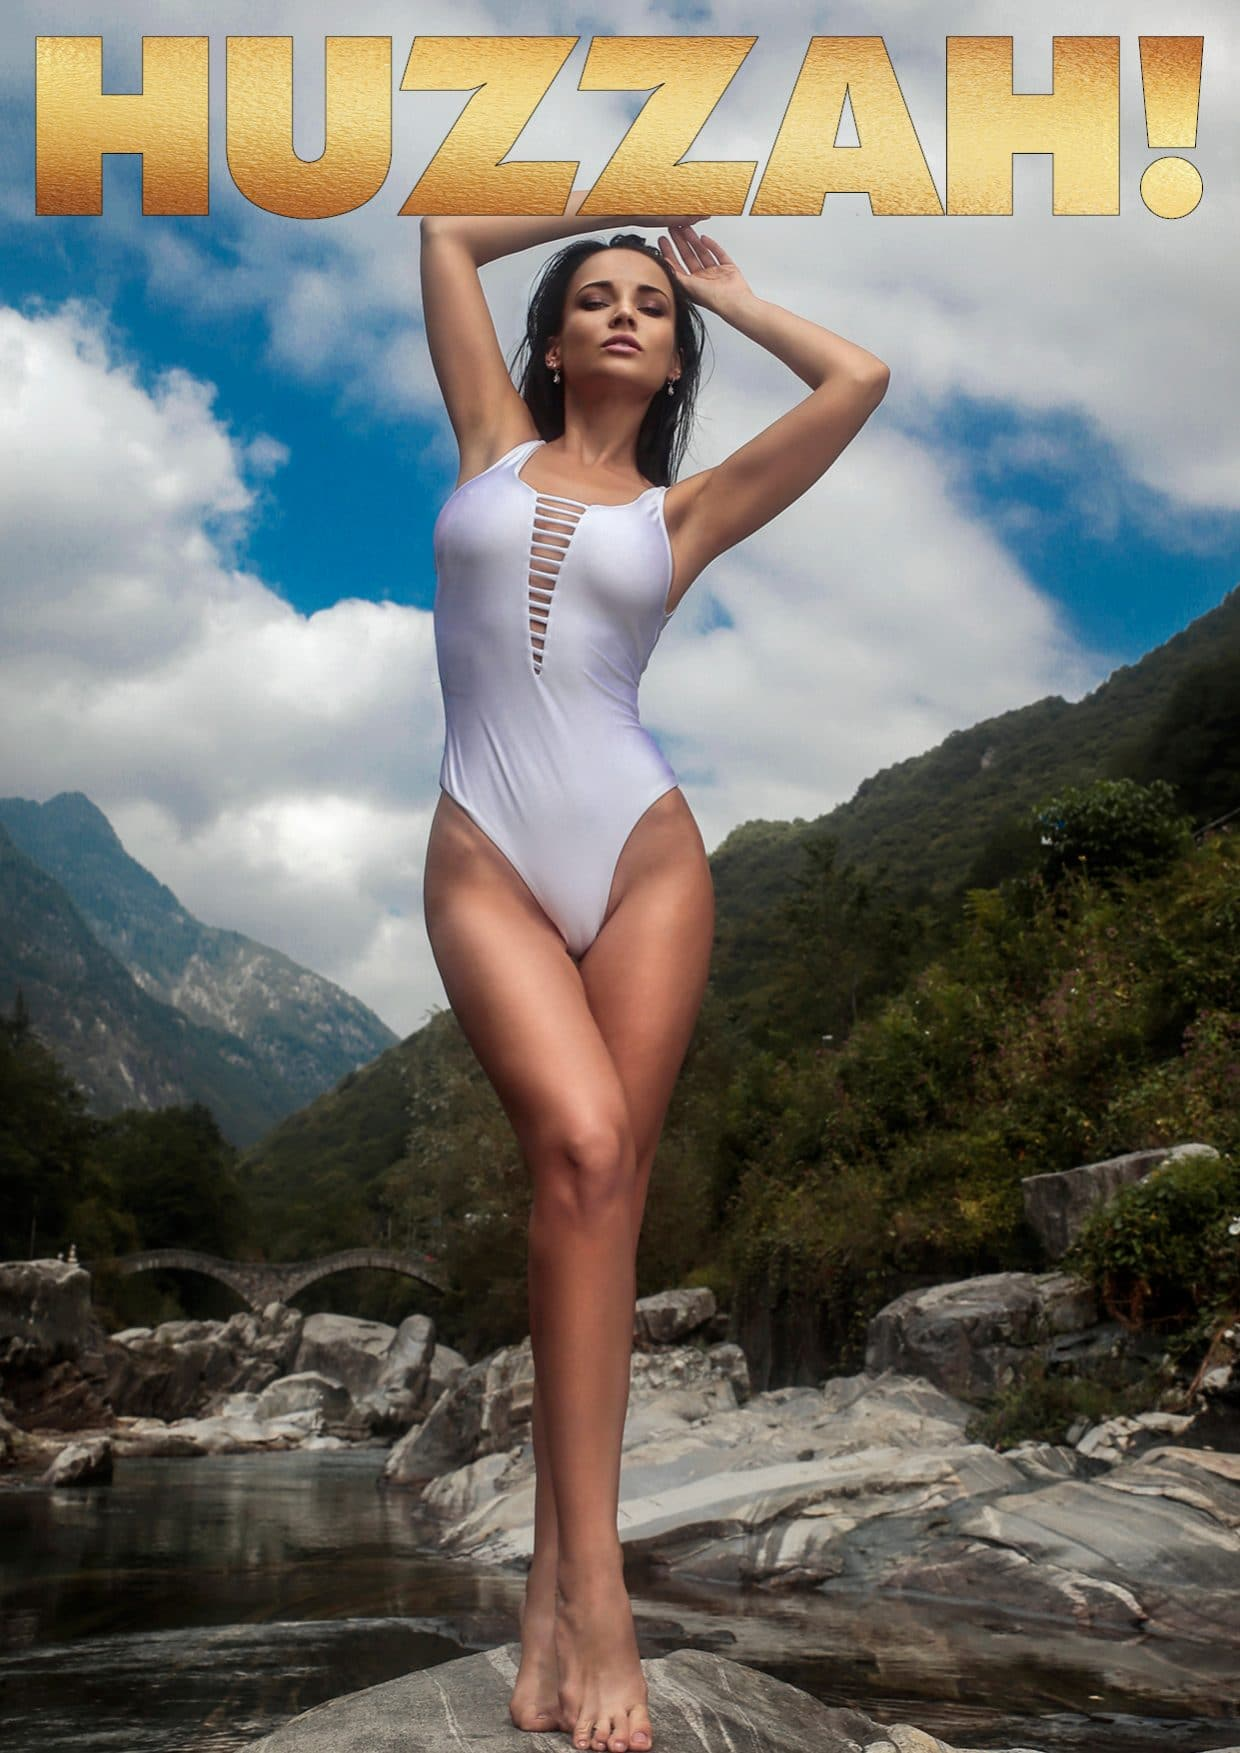 HUZZAH! Magazine - July 2018 - Angelina Petrova 1